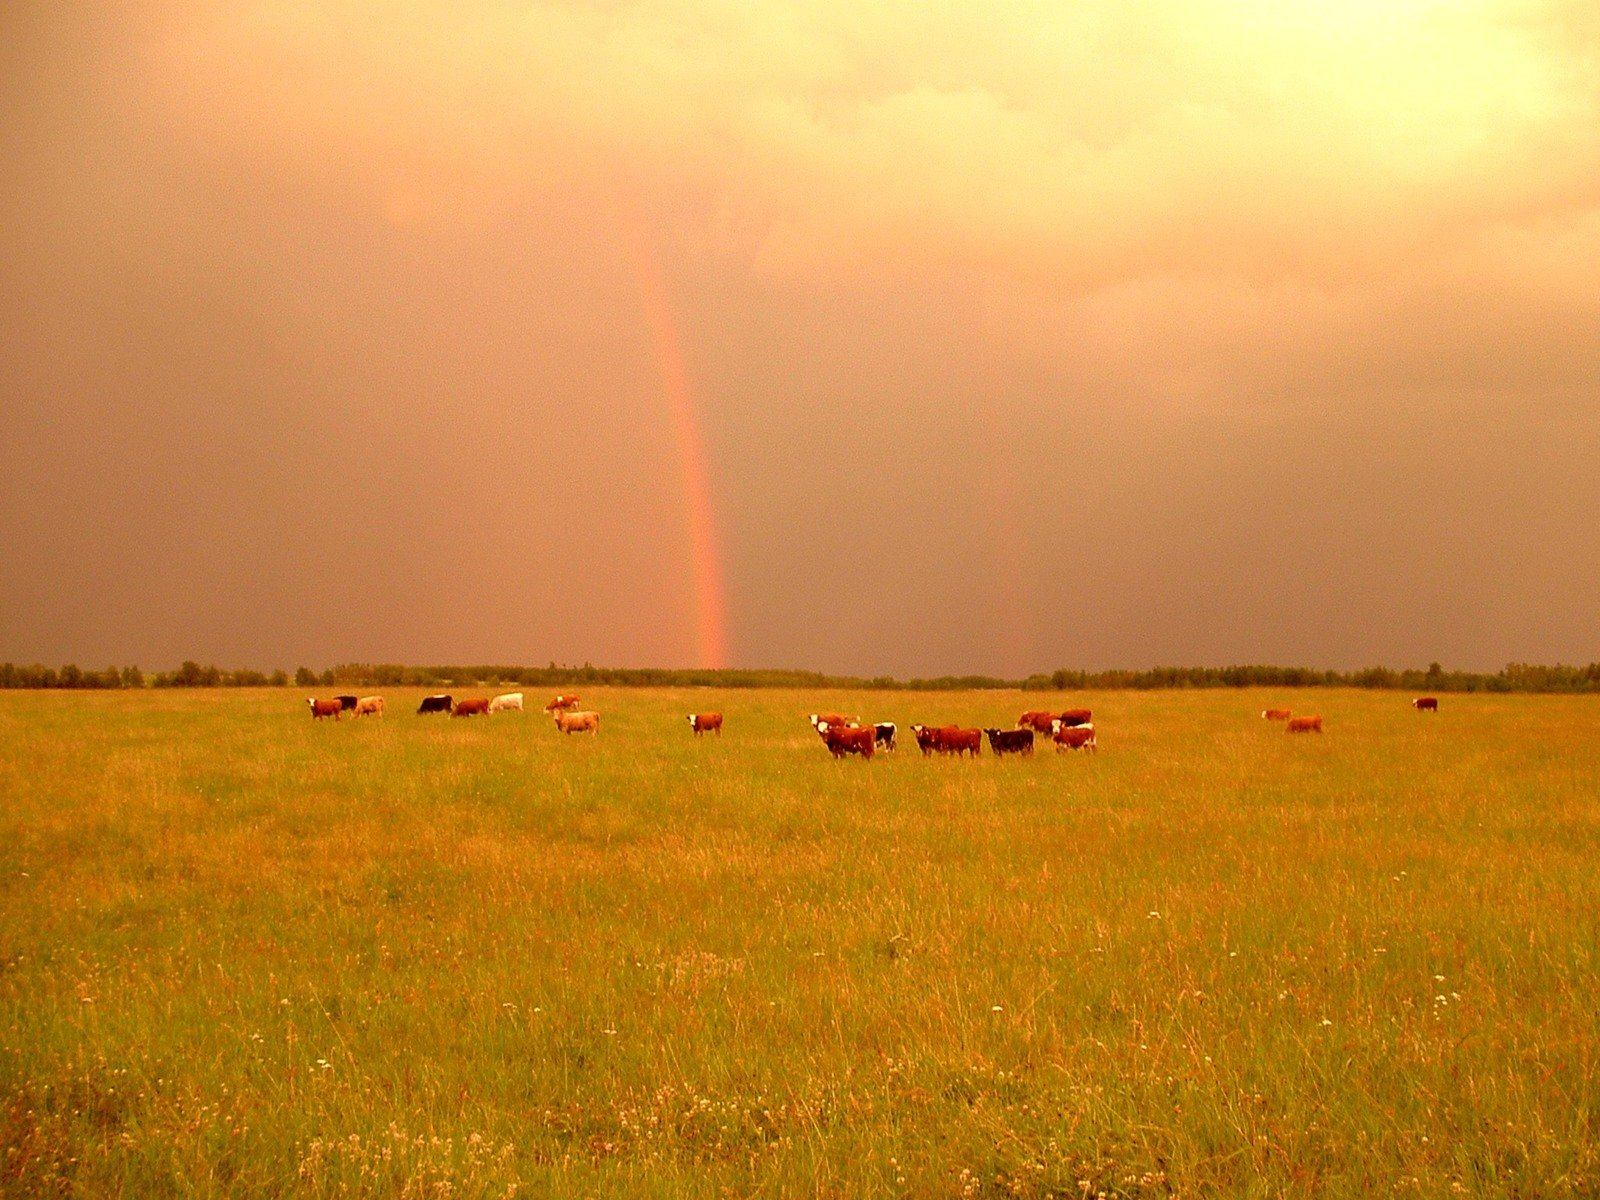 cows grazing on a field-1